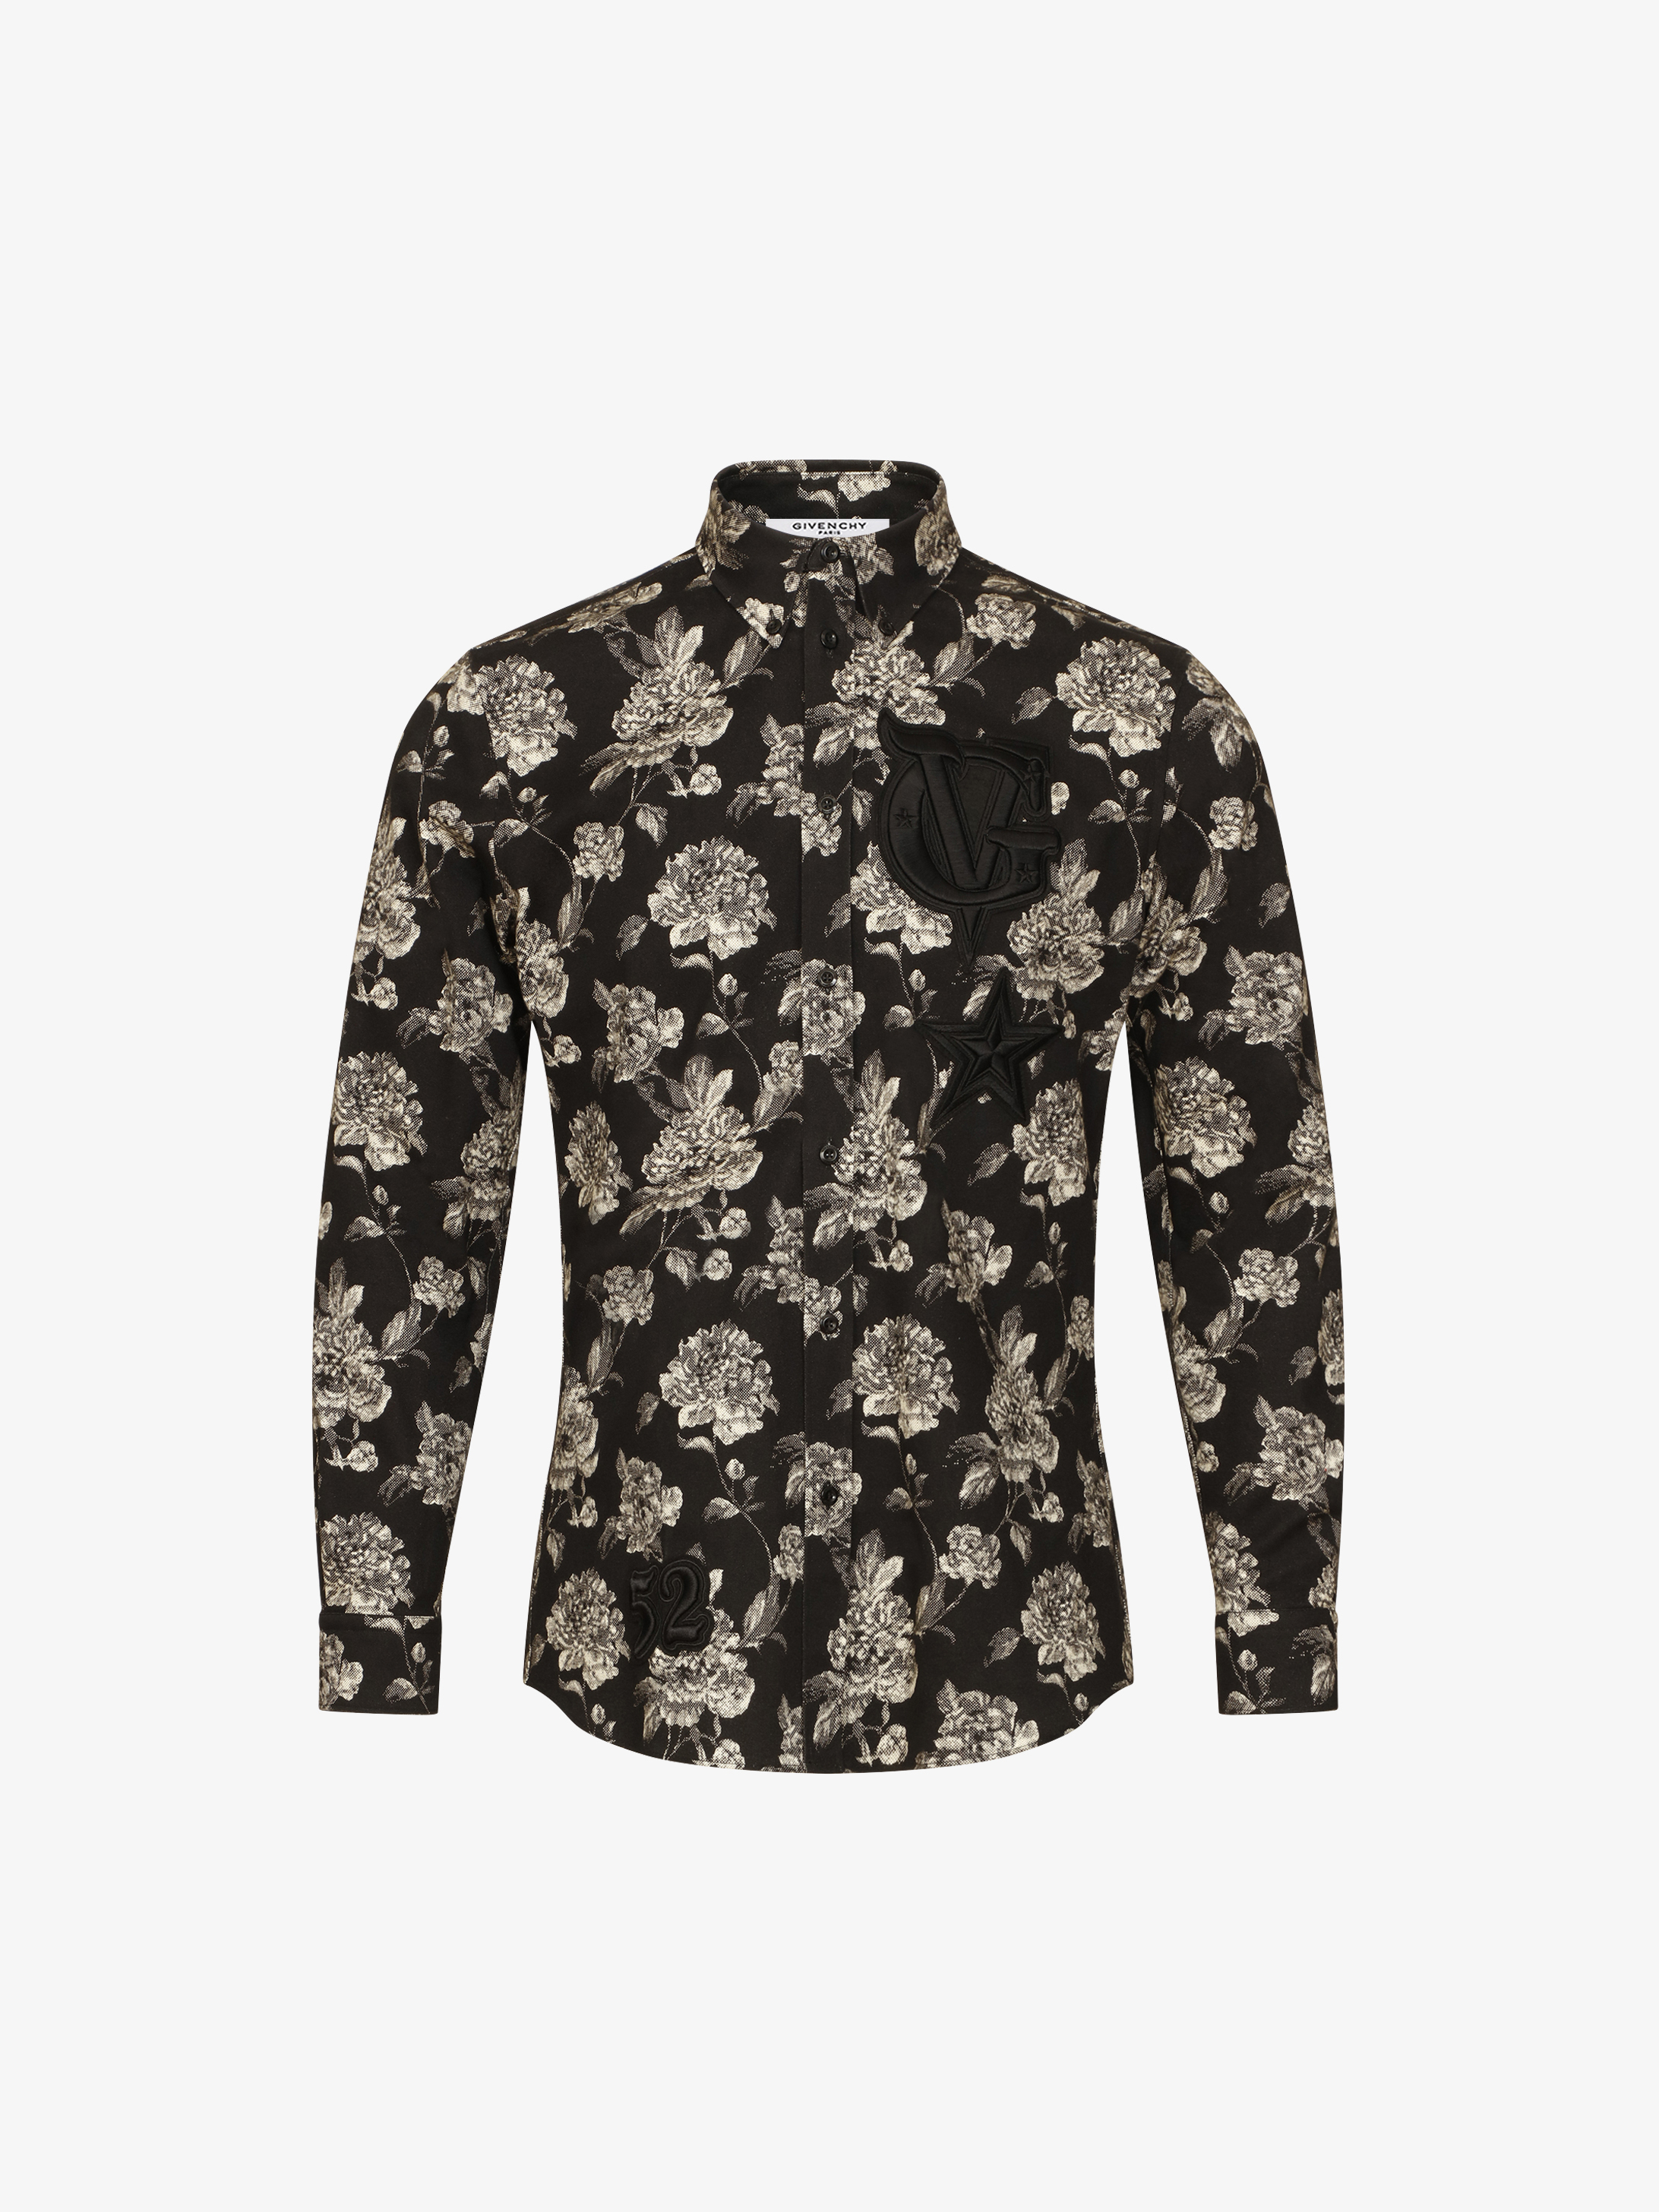 Flowers printed shirt with patches